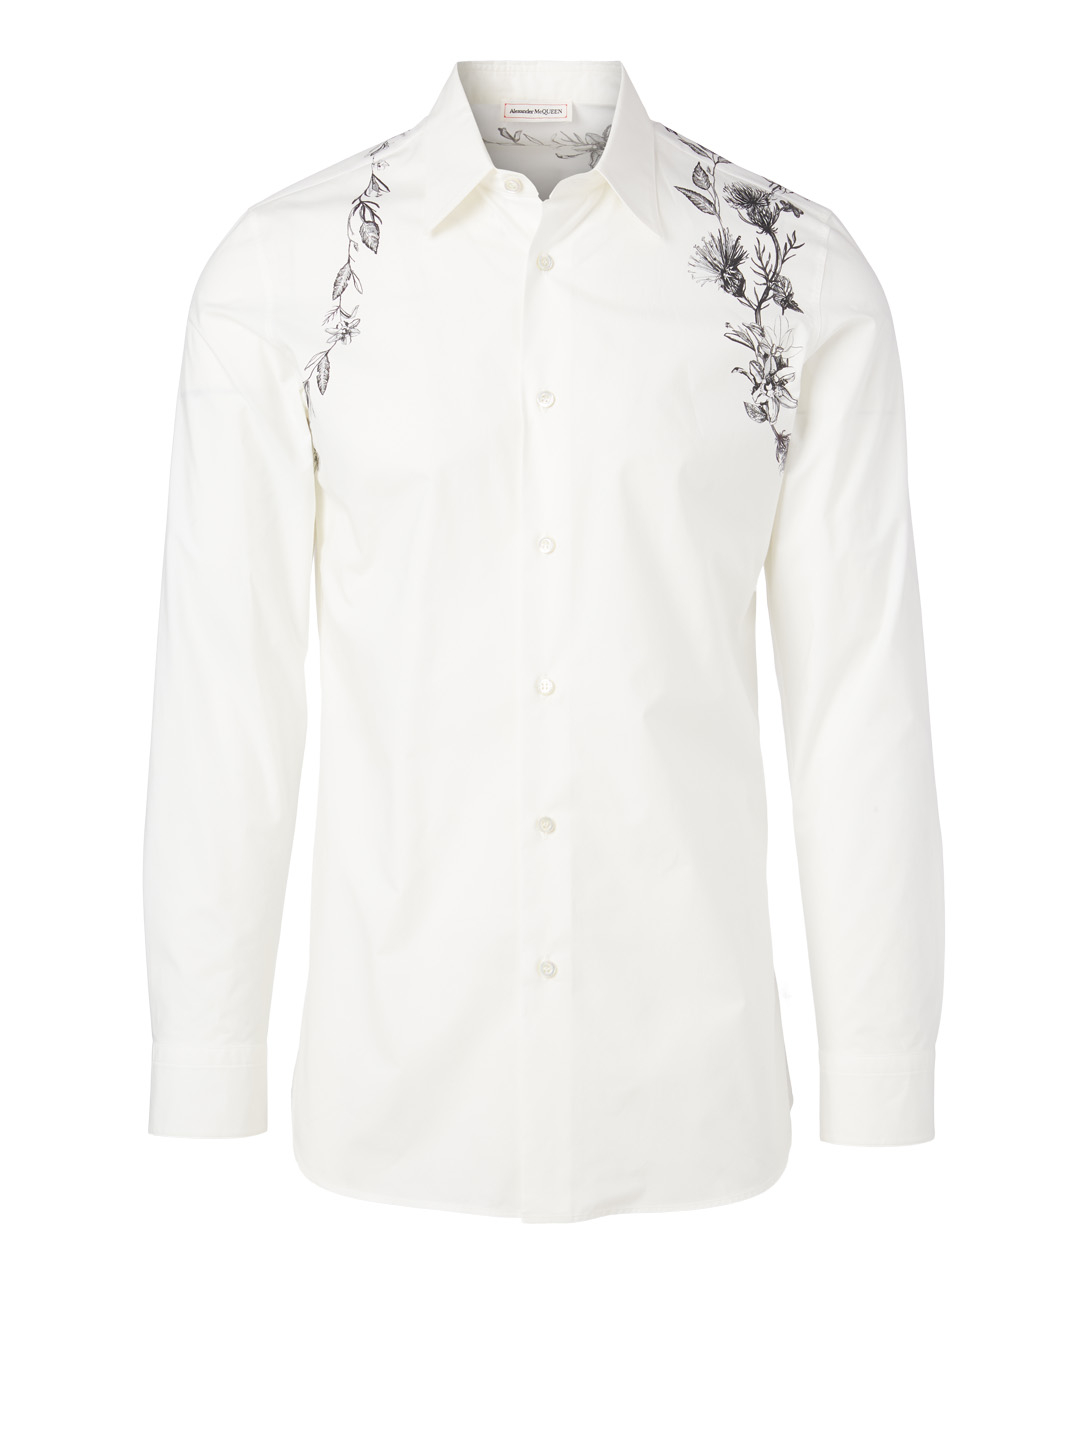 ALEXANDER MCQUEEN Cotton Shirt In Floral Harness Print Men's Multi